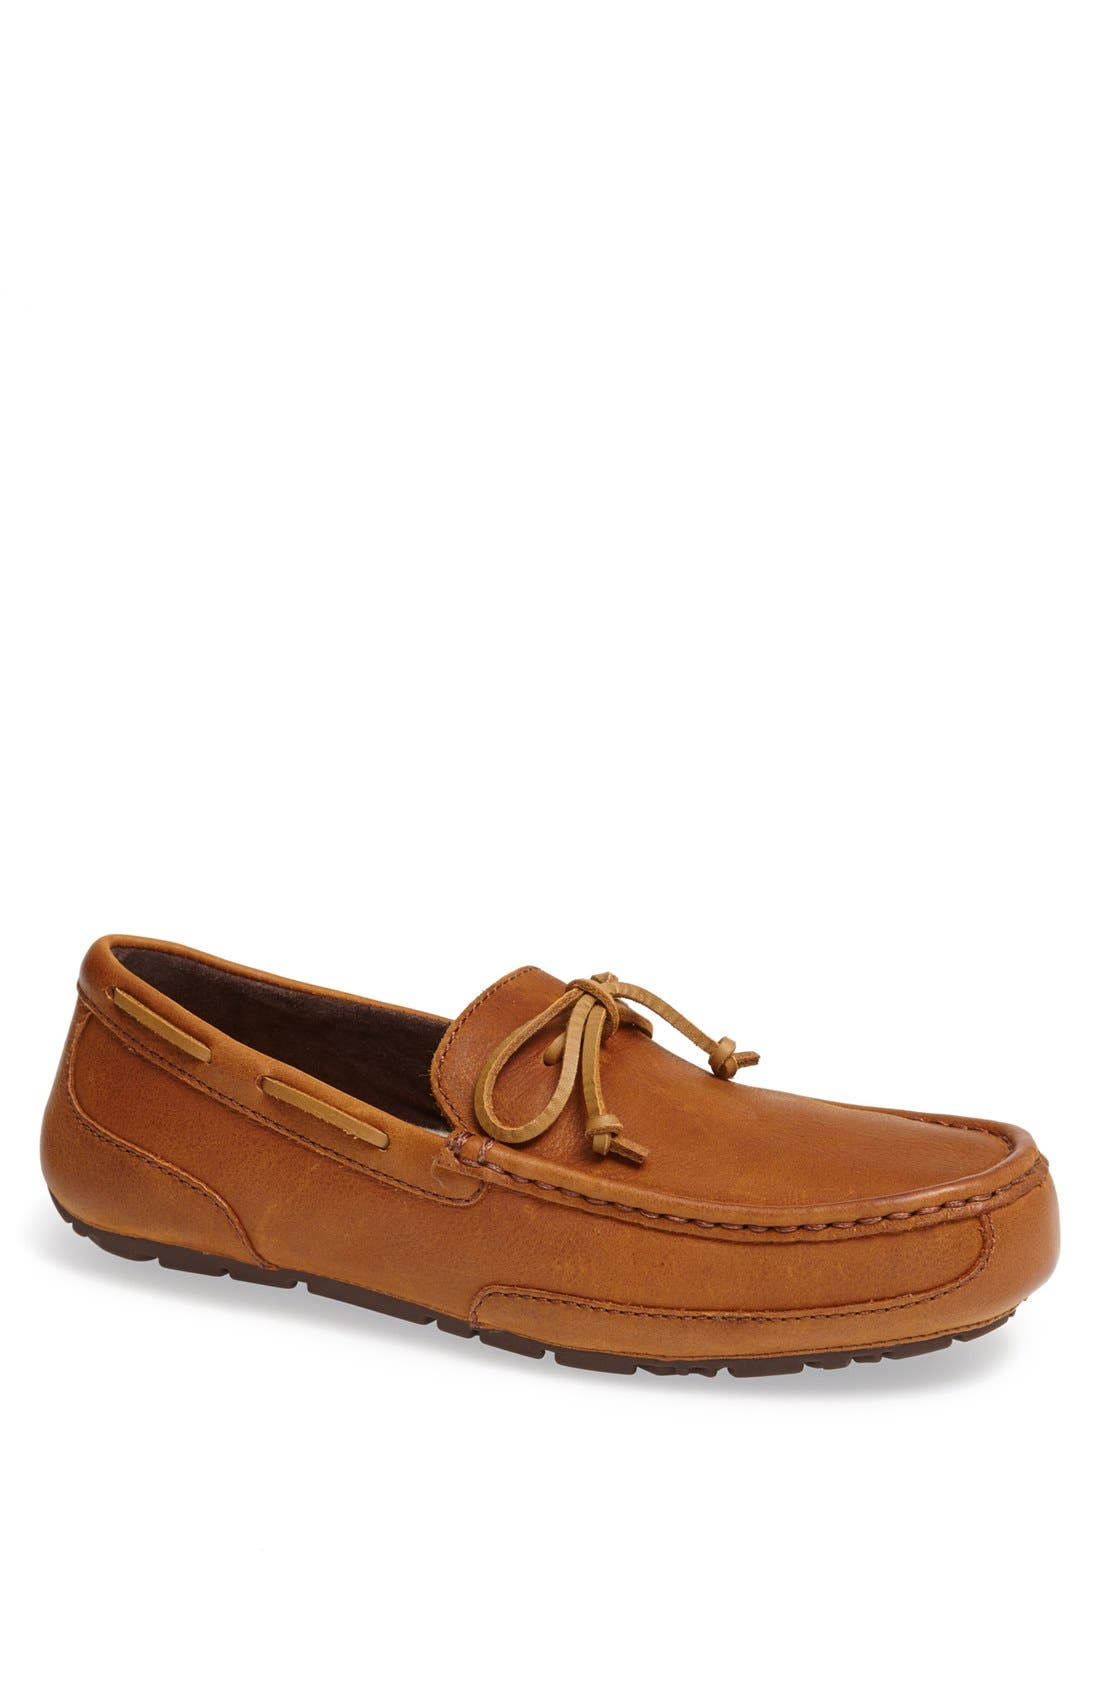 'Chester' Driving Loafer,                             Main thumbnail 5, color,